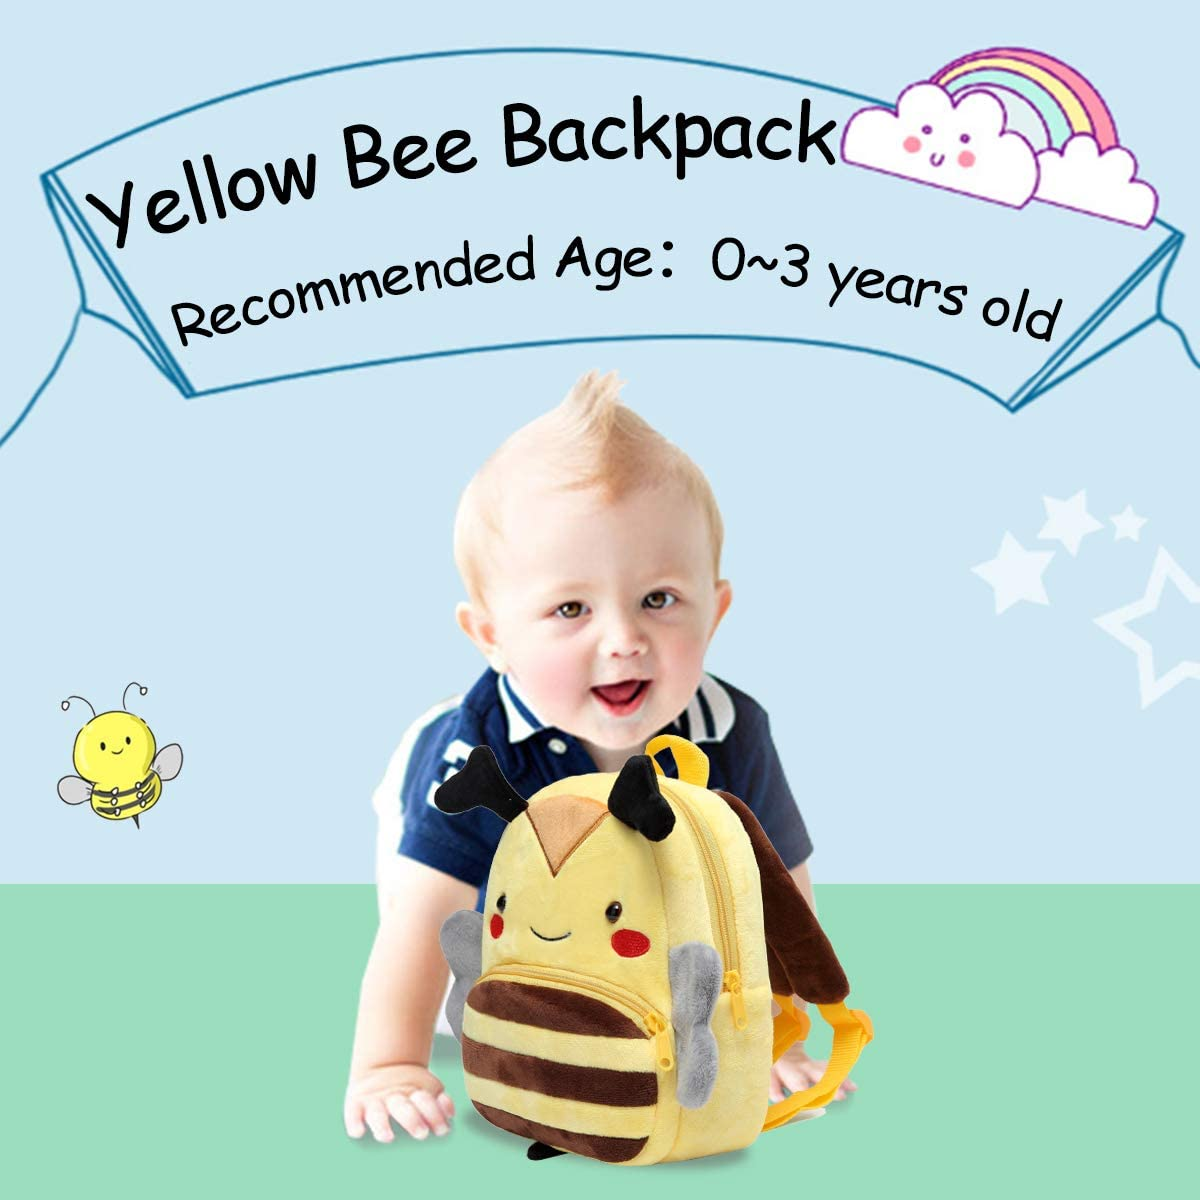 Backpack for Boys and Girls,KASQO Small Cute Animal 3D Soft Plush Backpack for Baby Elephant